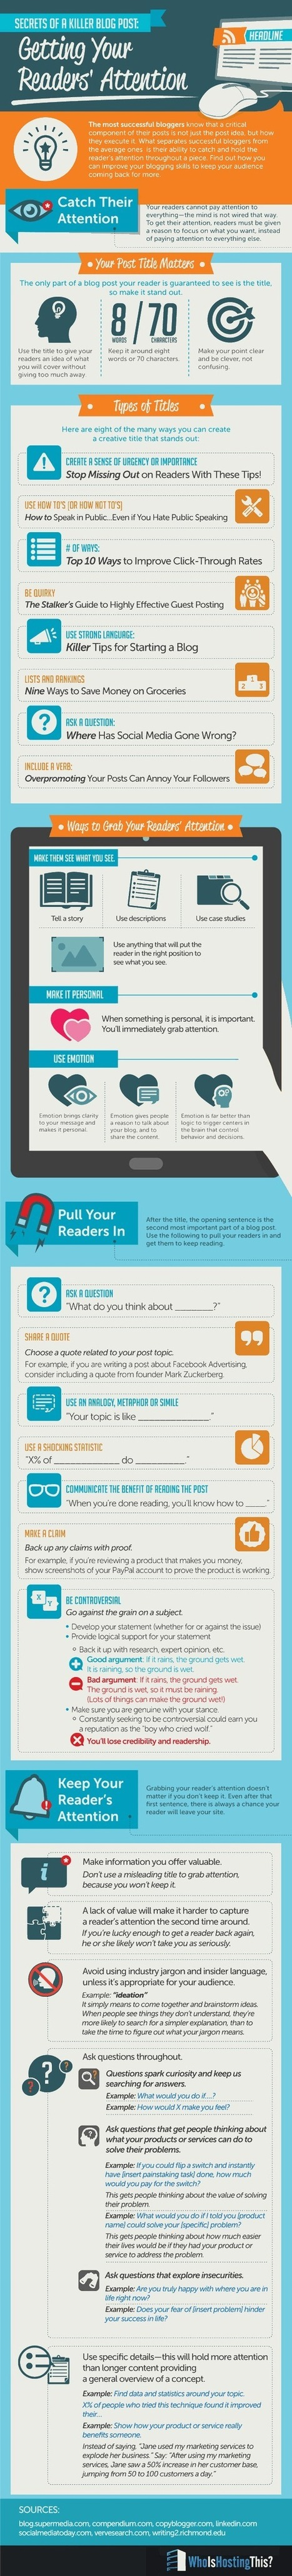 The Secrets to Writing an Attention-Grabbing Blog Post [Infographic] | Blogging | Scoop.it